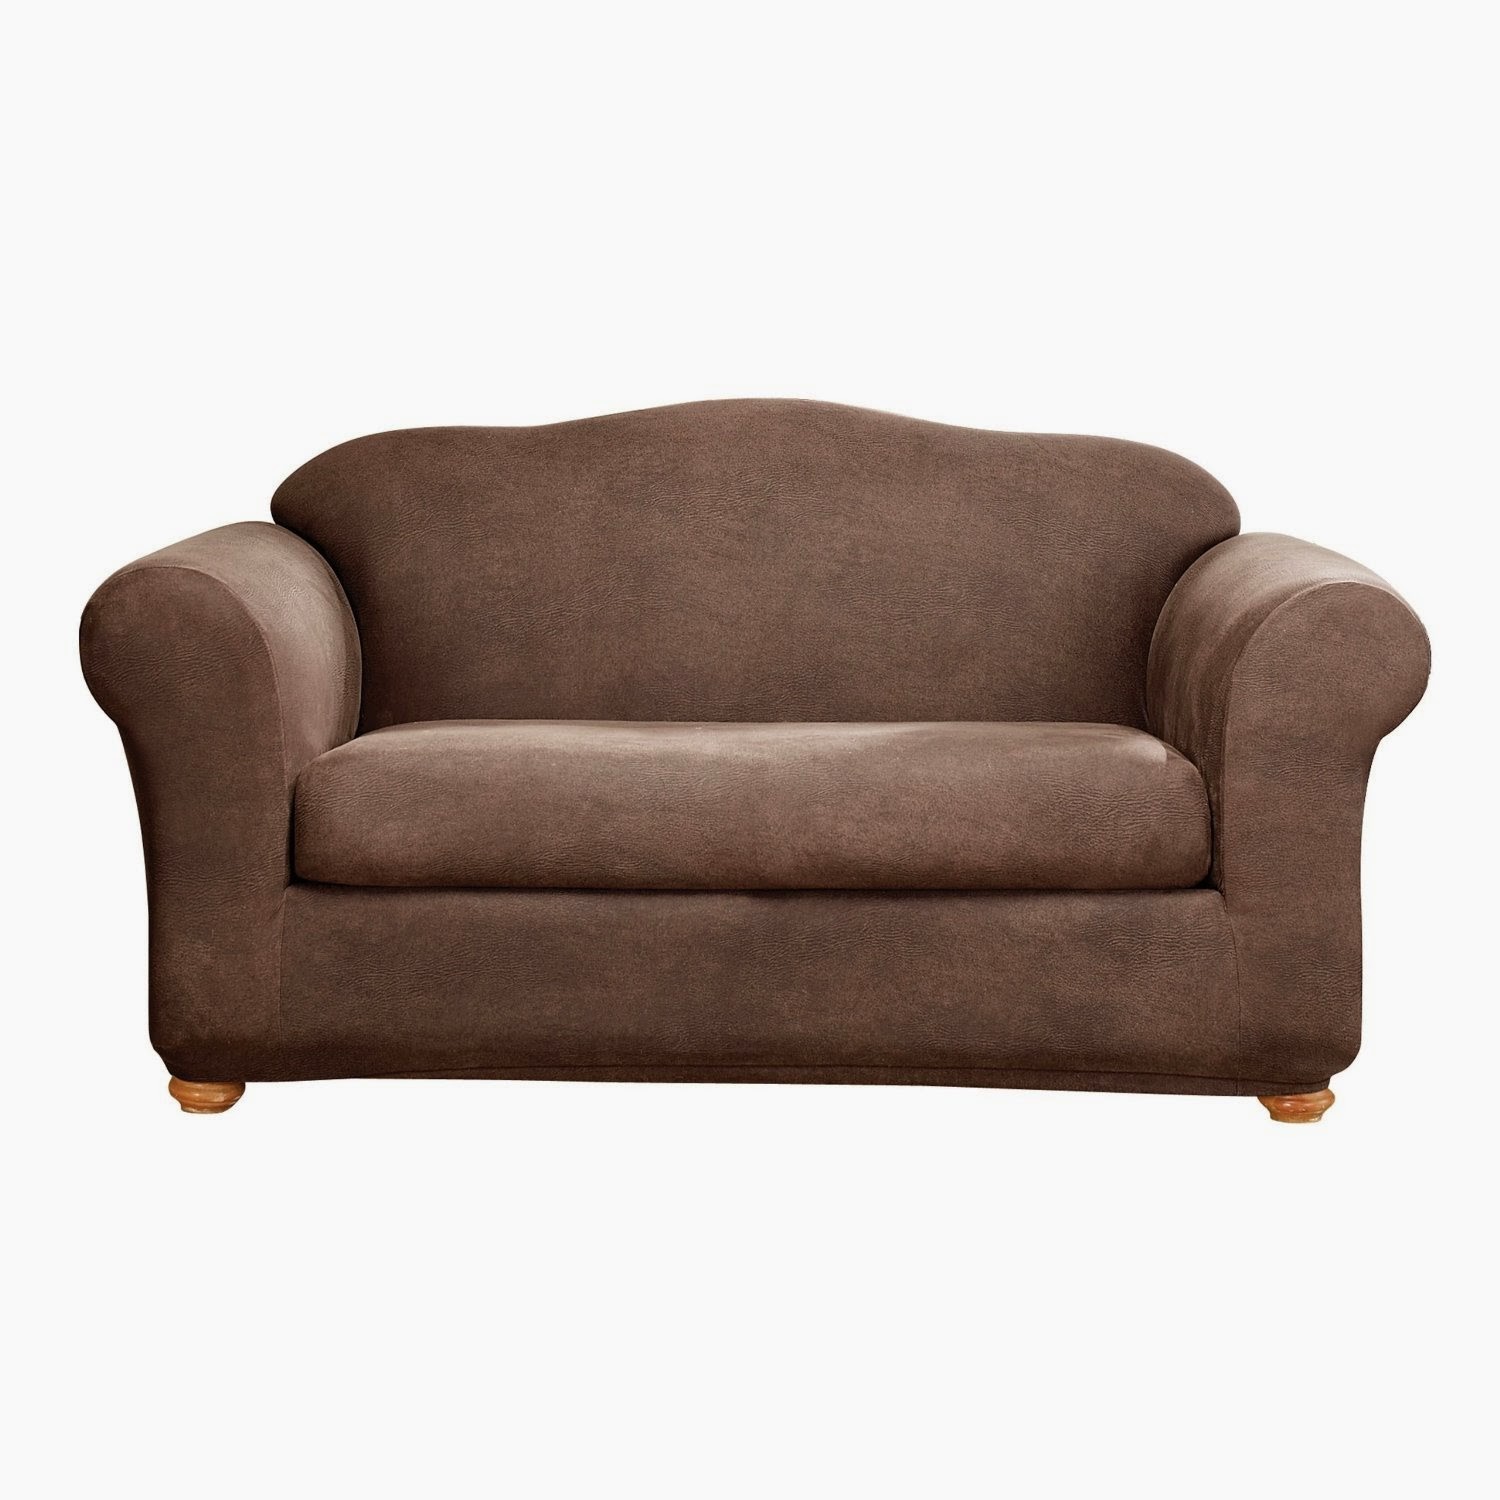 Couch covers for Furniture covers